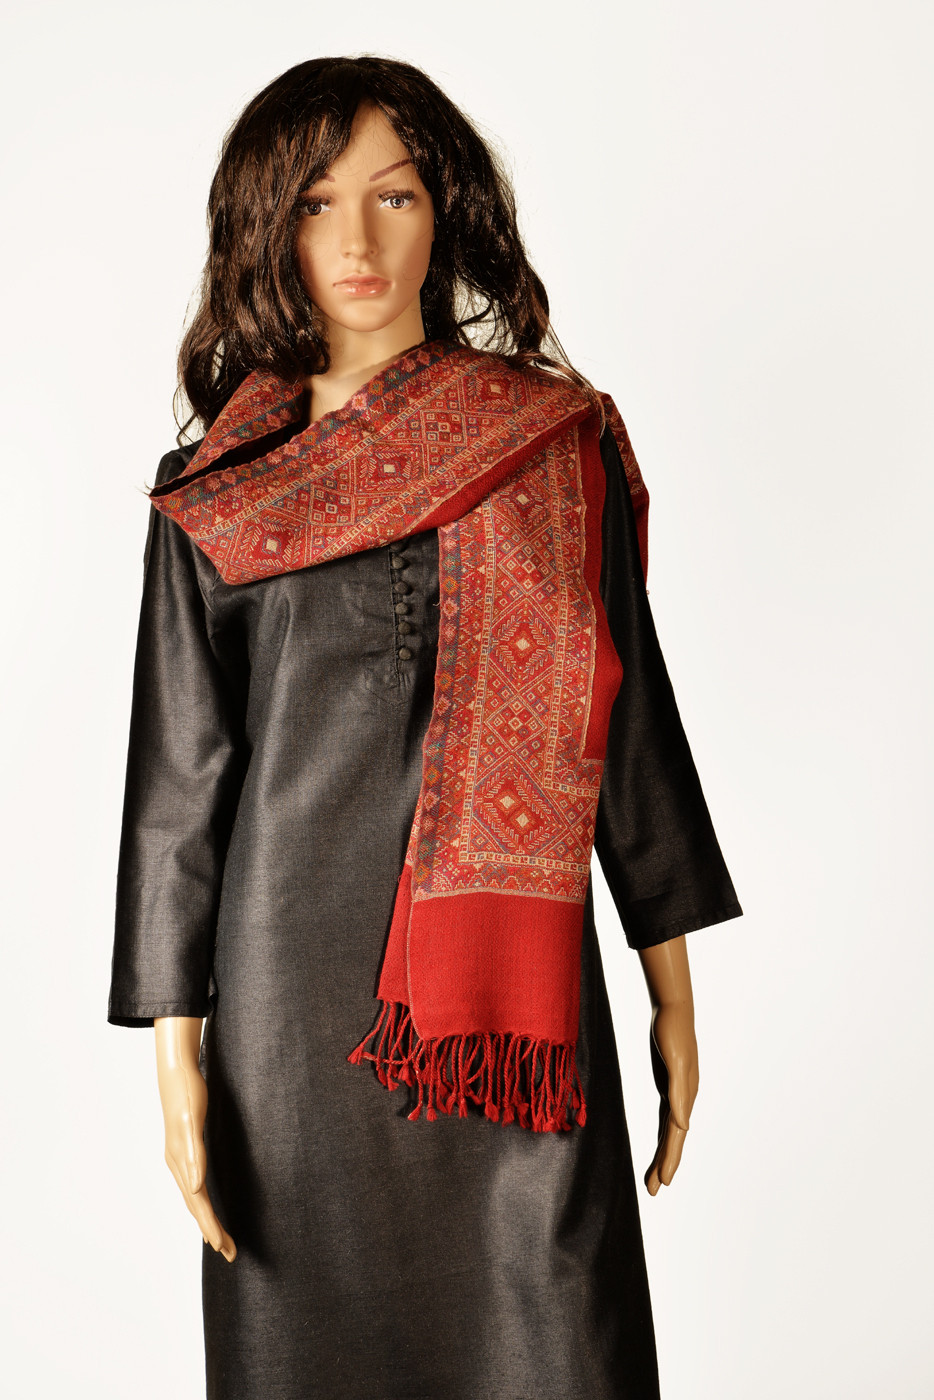 Kinari 04-C Pashmina Self Design Womens Shawl